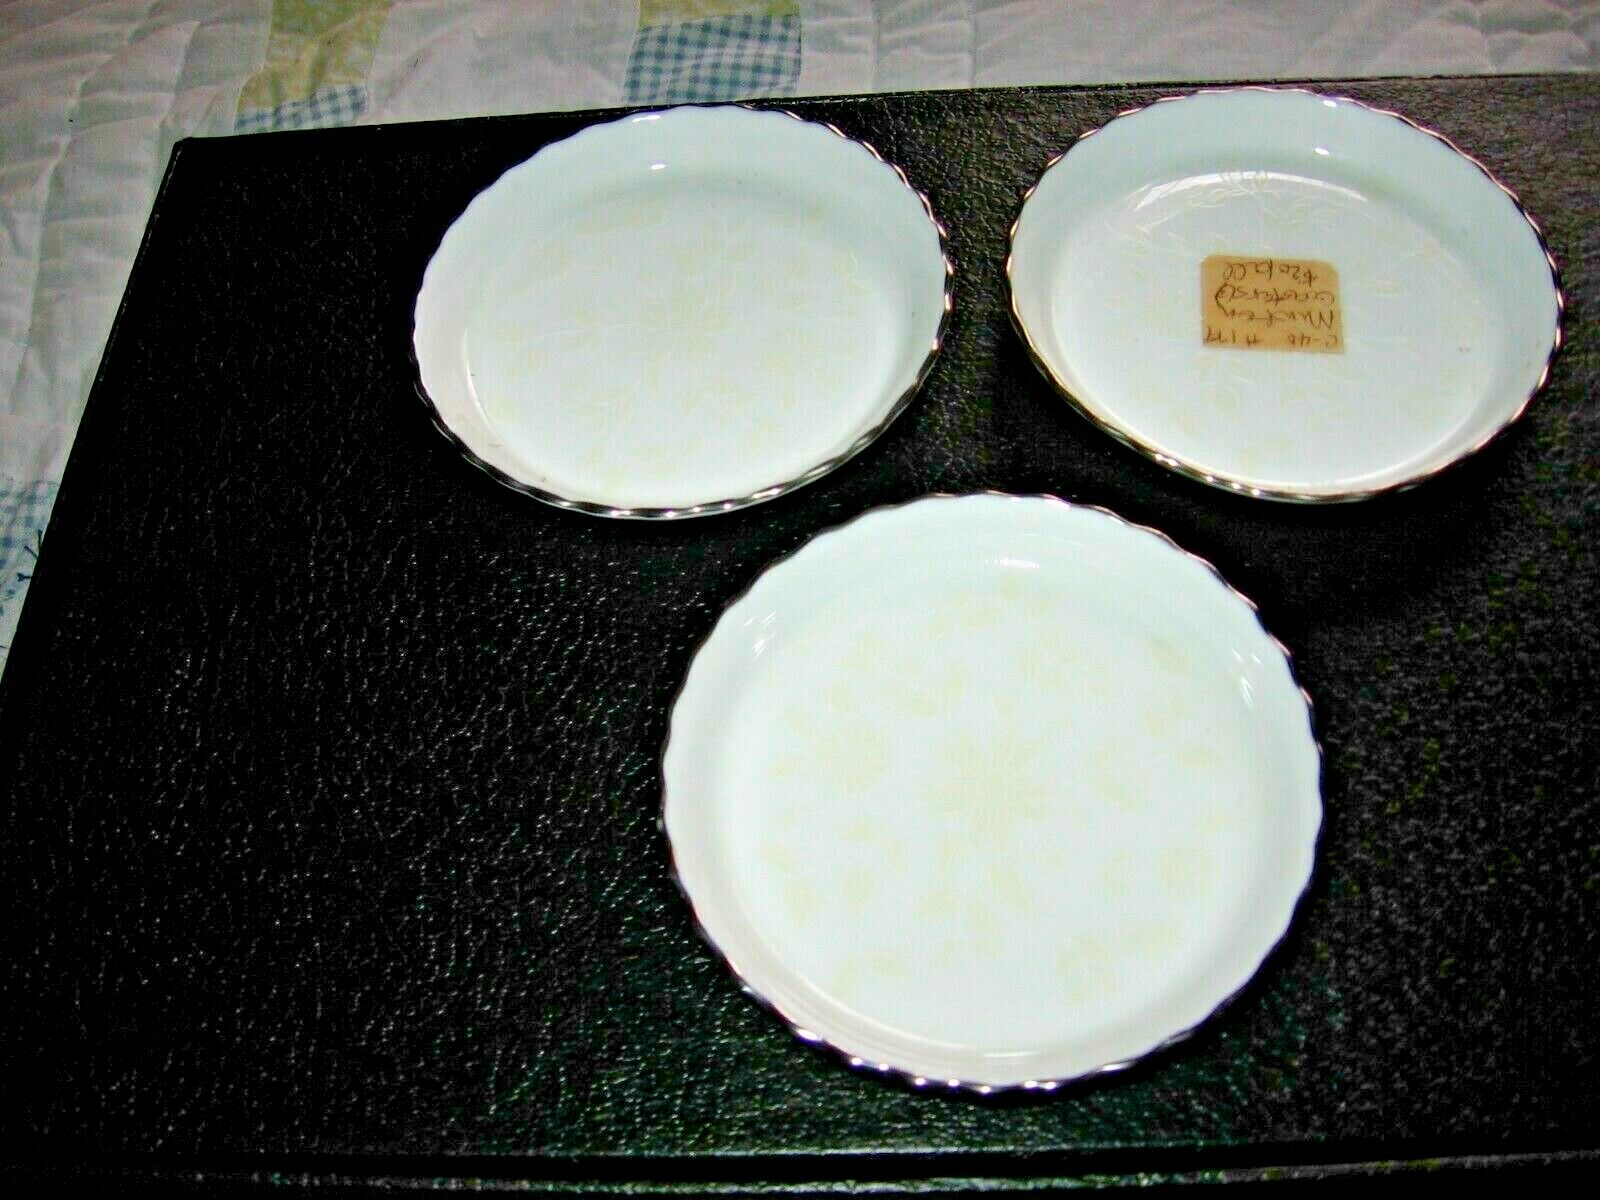 Minton Paisley White Bone China Coasters 3 Mint Condition LOOK 40 OFF  - $5.95